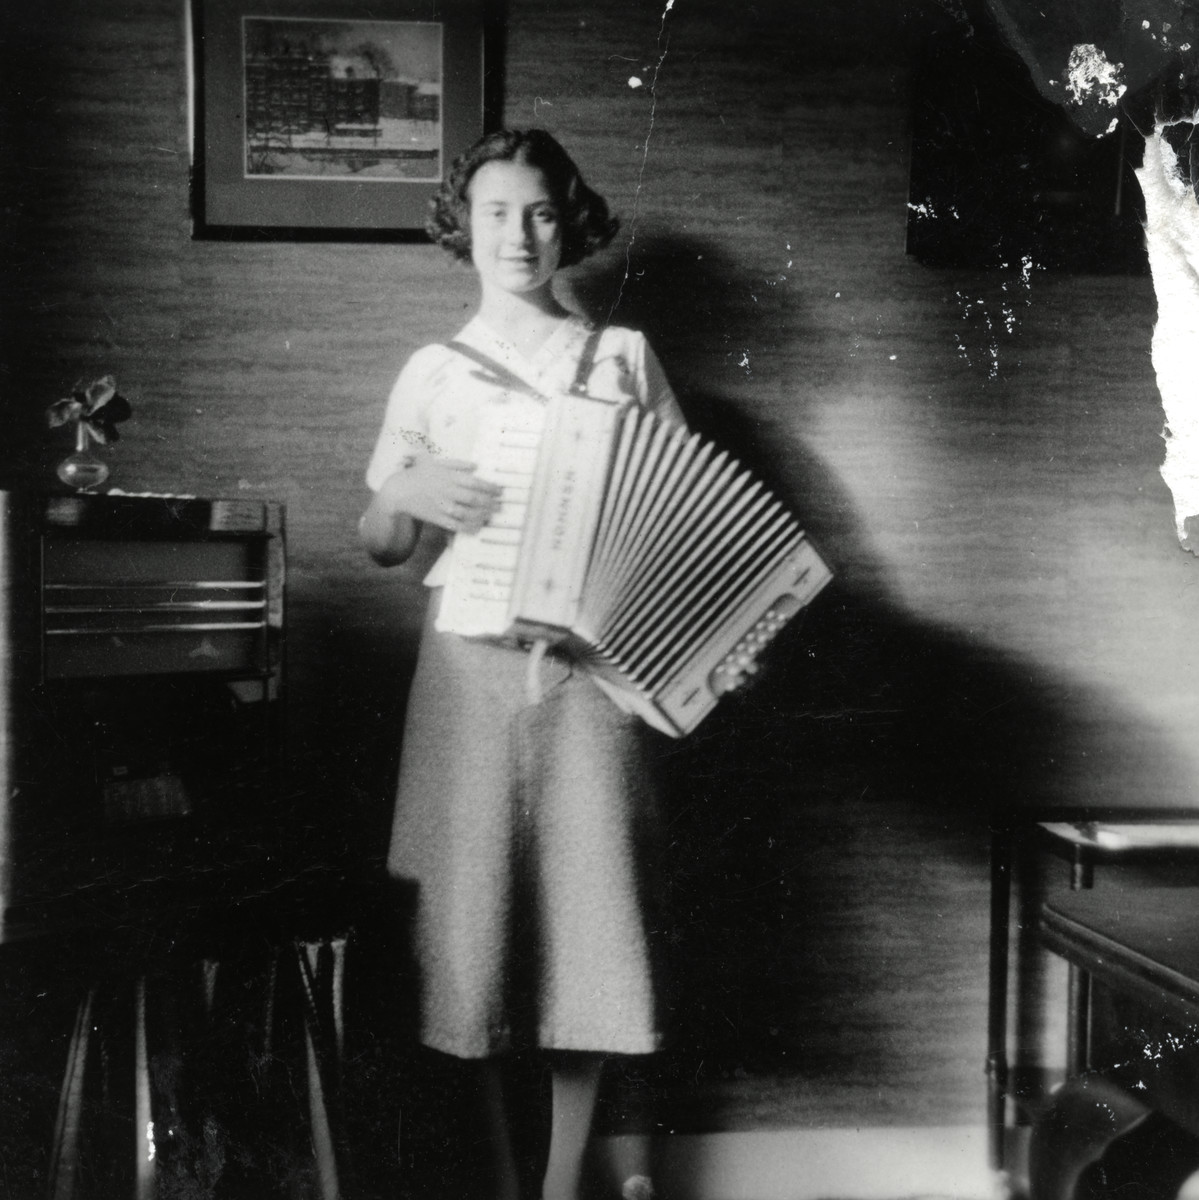 Ellis Cohen-Paraira plays the accordian in her home.